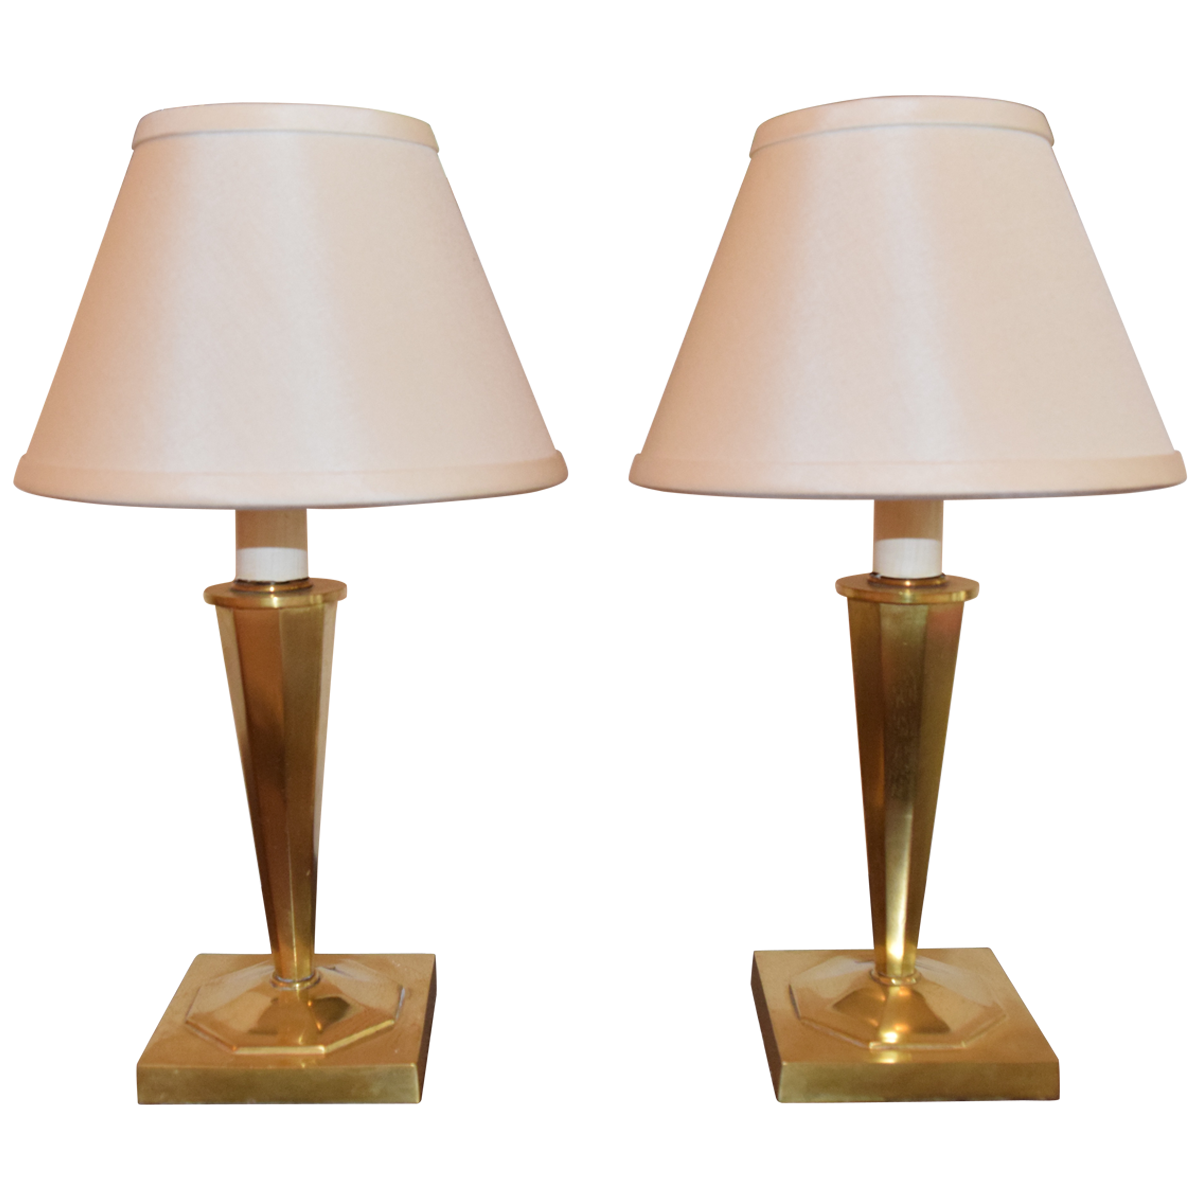 25 vintage table lamps for a retro home decor warisan lighting a perfect vintage table lamp exudes class and elegance that speaks not only about the lamp but also about your fine obsession for all things beautiful greentooth Gallery